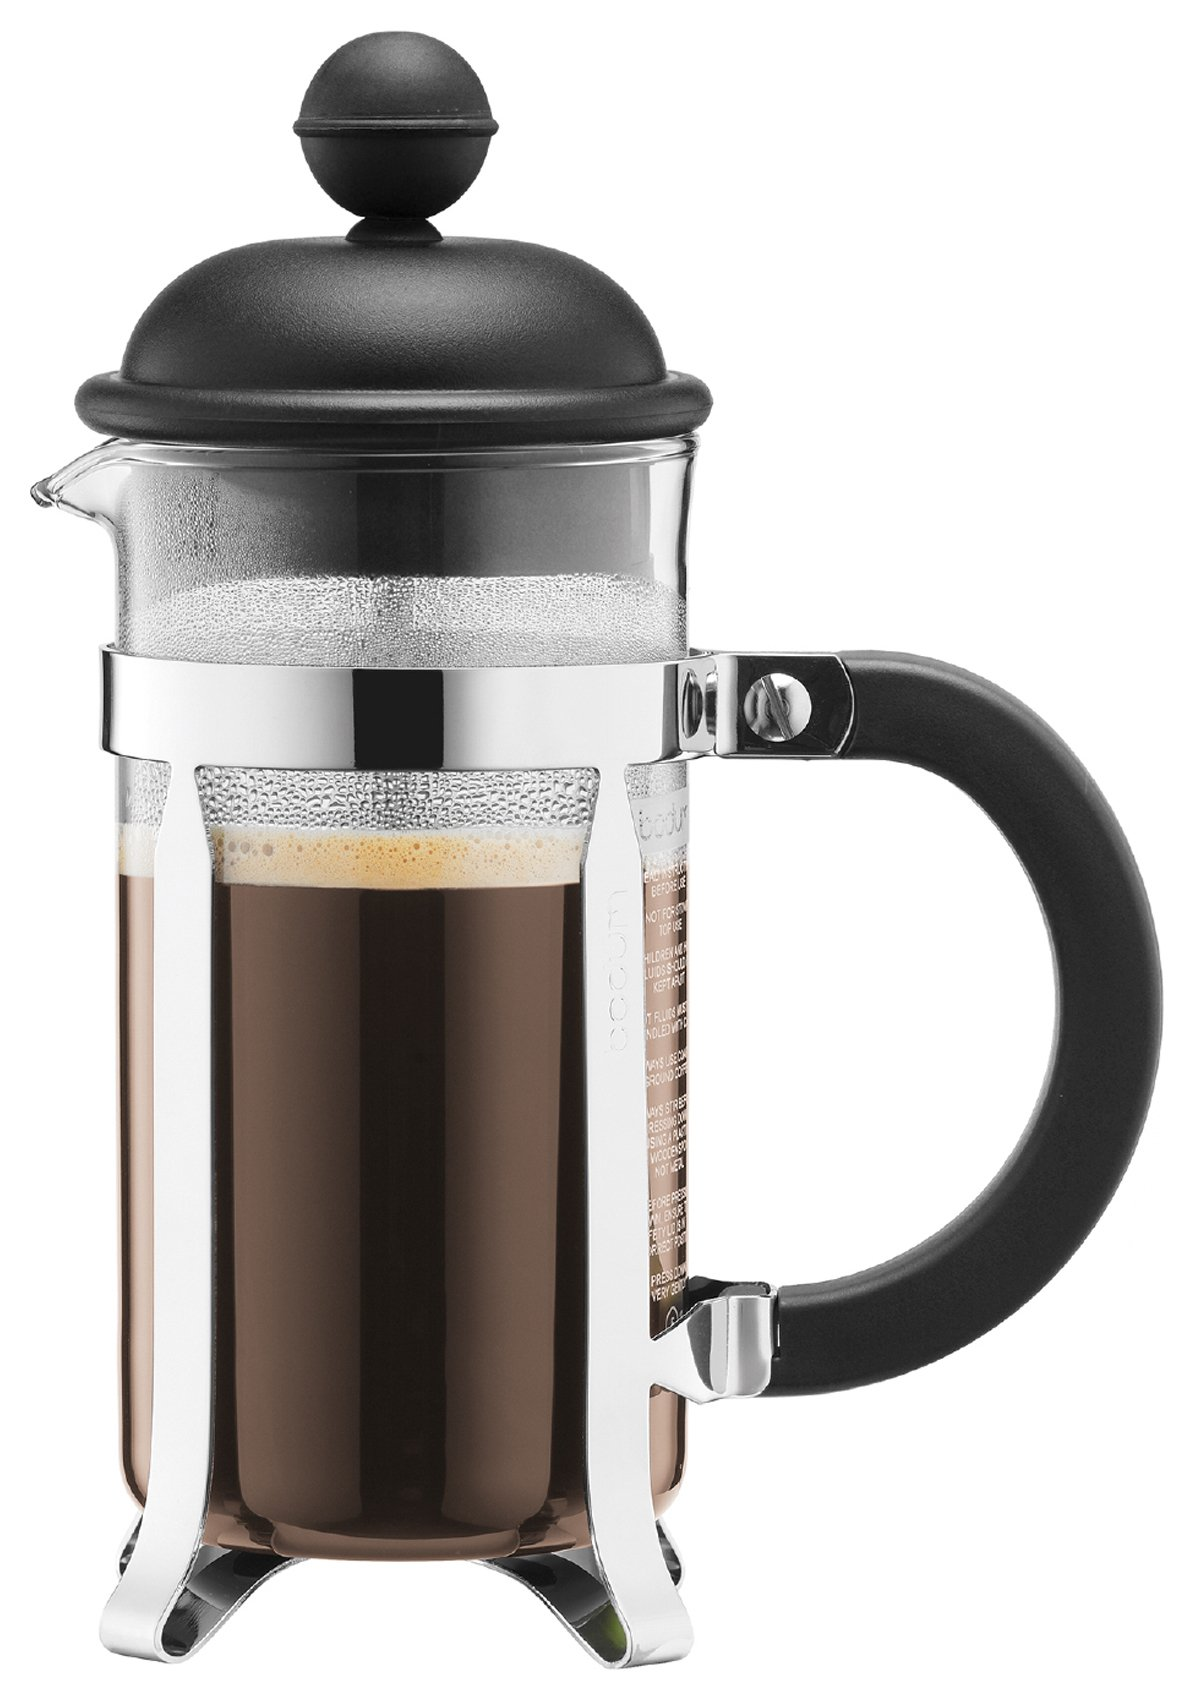 Bodum - Caffettiera Coffee Maker 3 Cup - Black